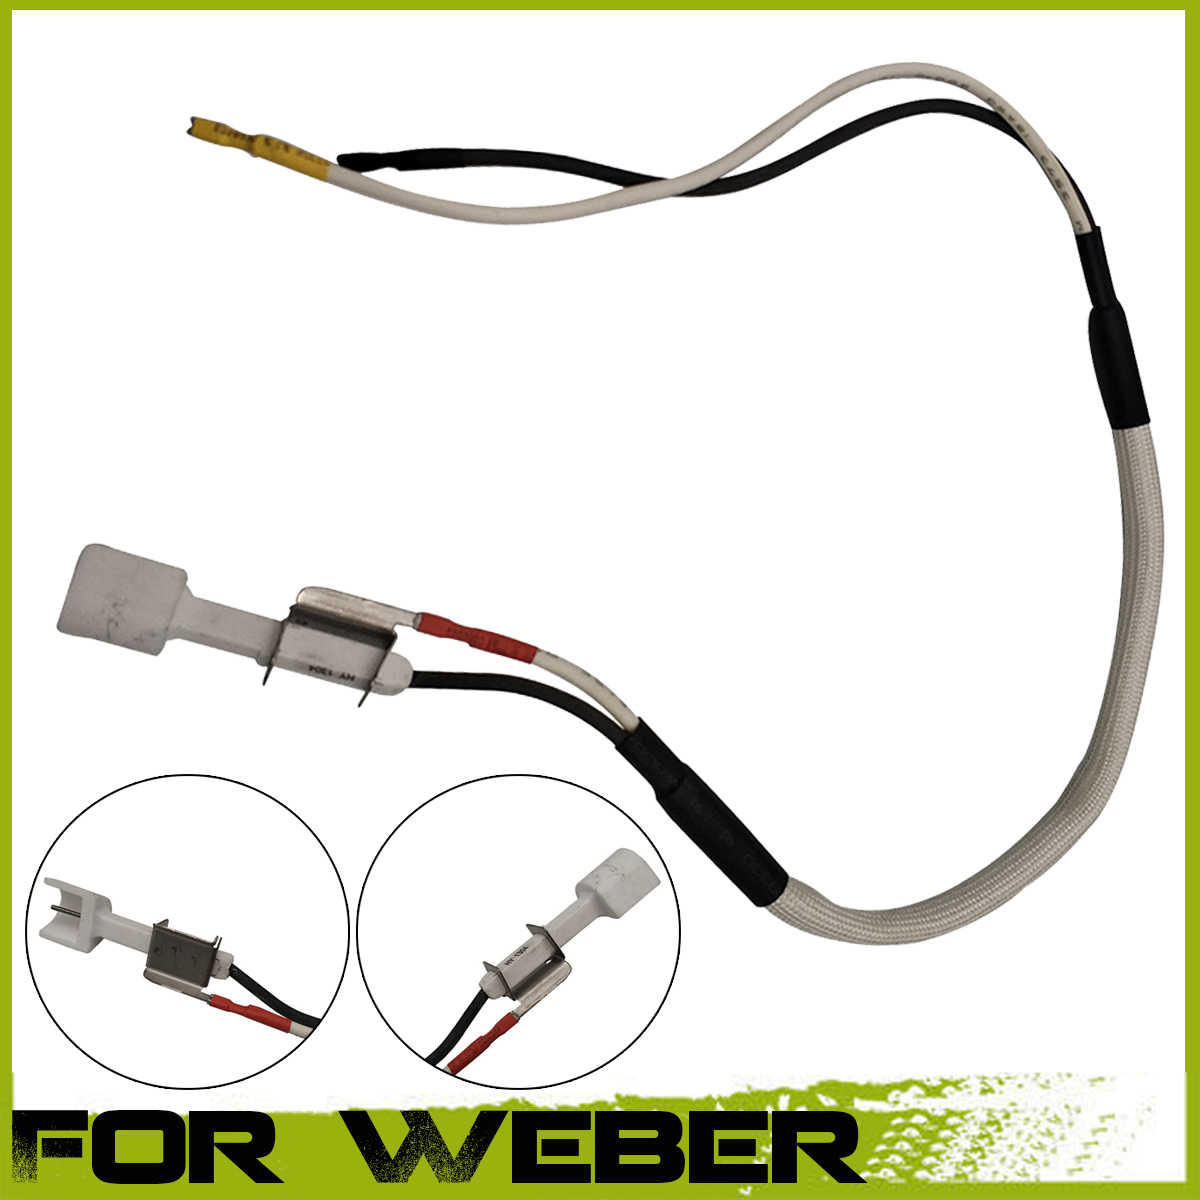 1PCS 45cm Igniter Accessory Piezo Spark Ignition Set for Weber BBQ Grill Heater Heater Radiator Grill Cooker BBQ